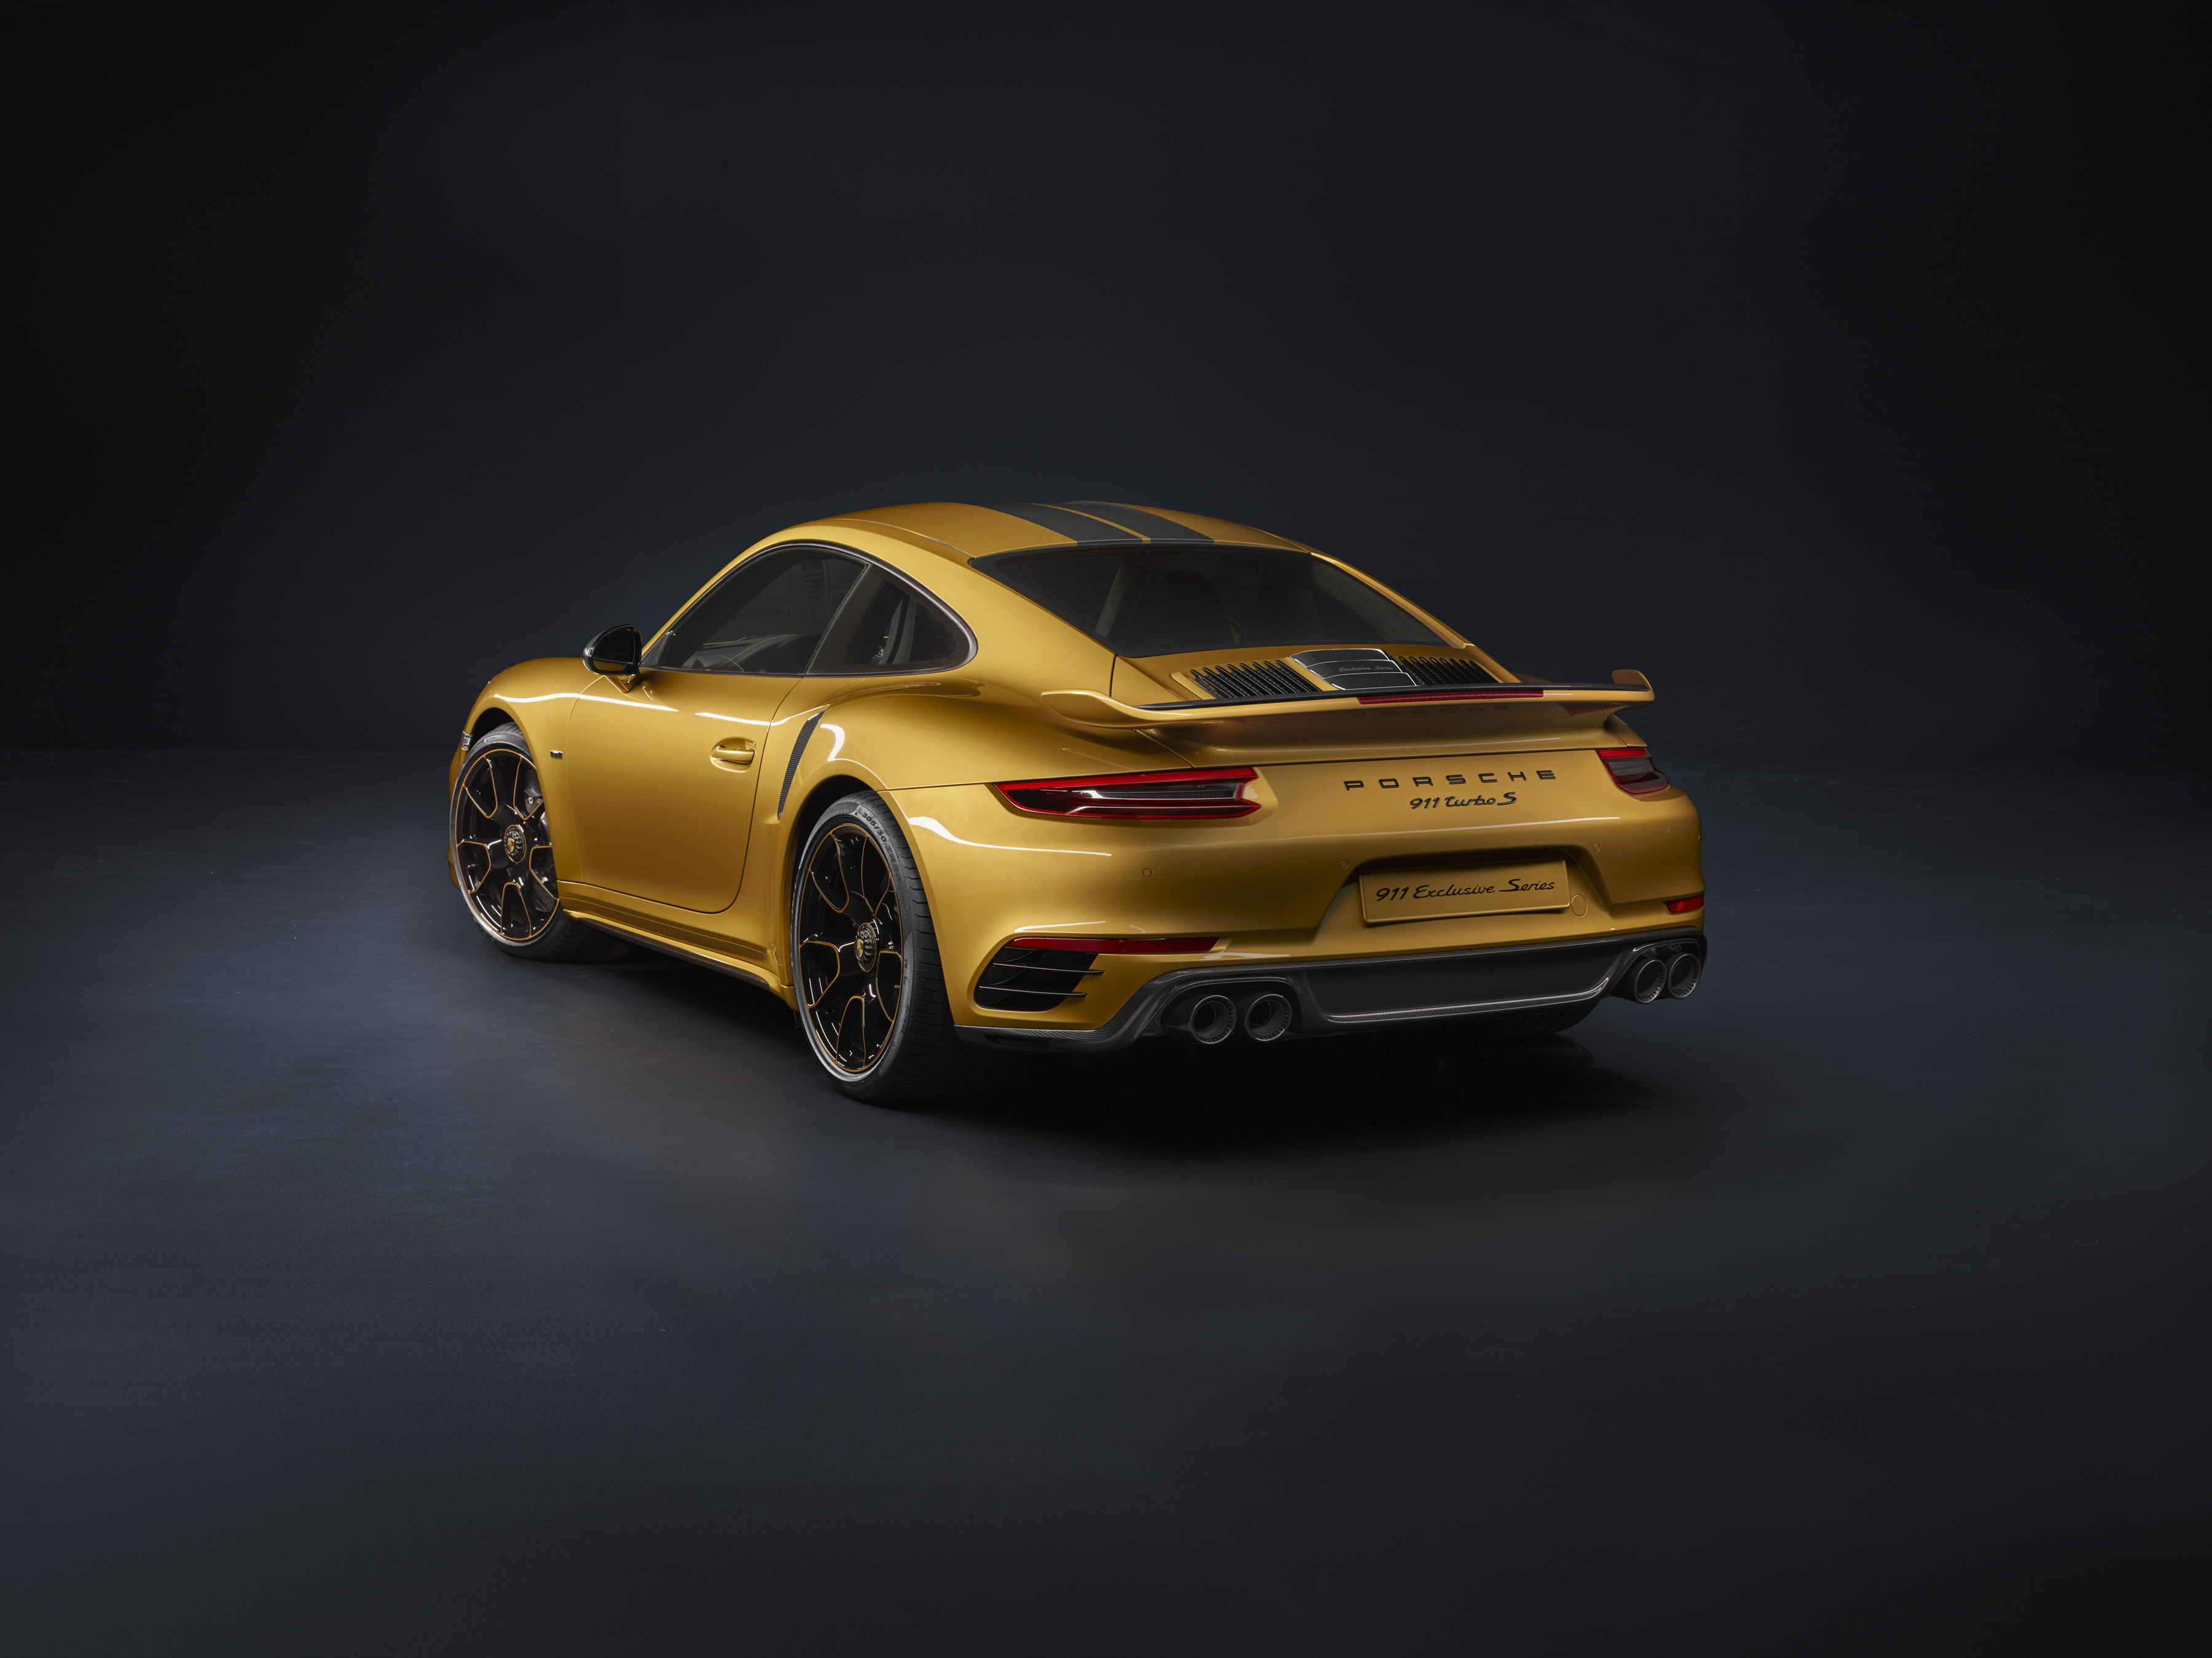 porsche 911 turbo s 2017, hd cars, 4k wallpapers, images